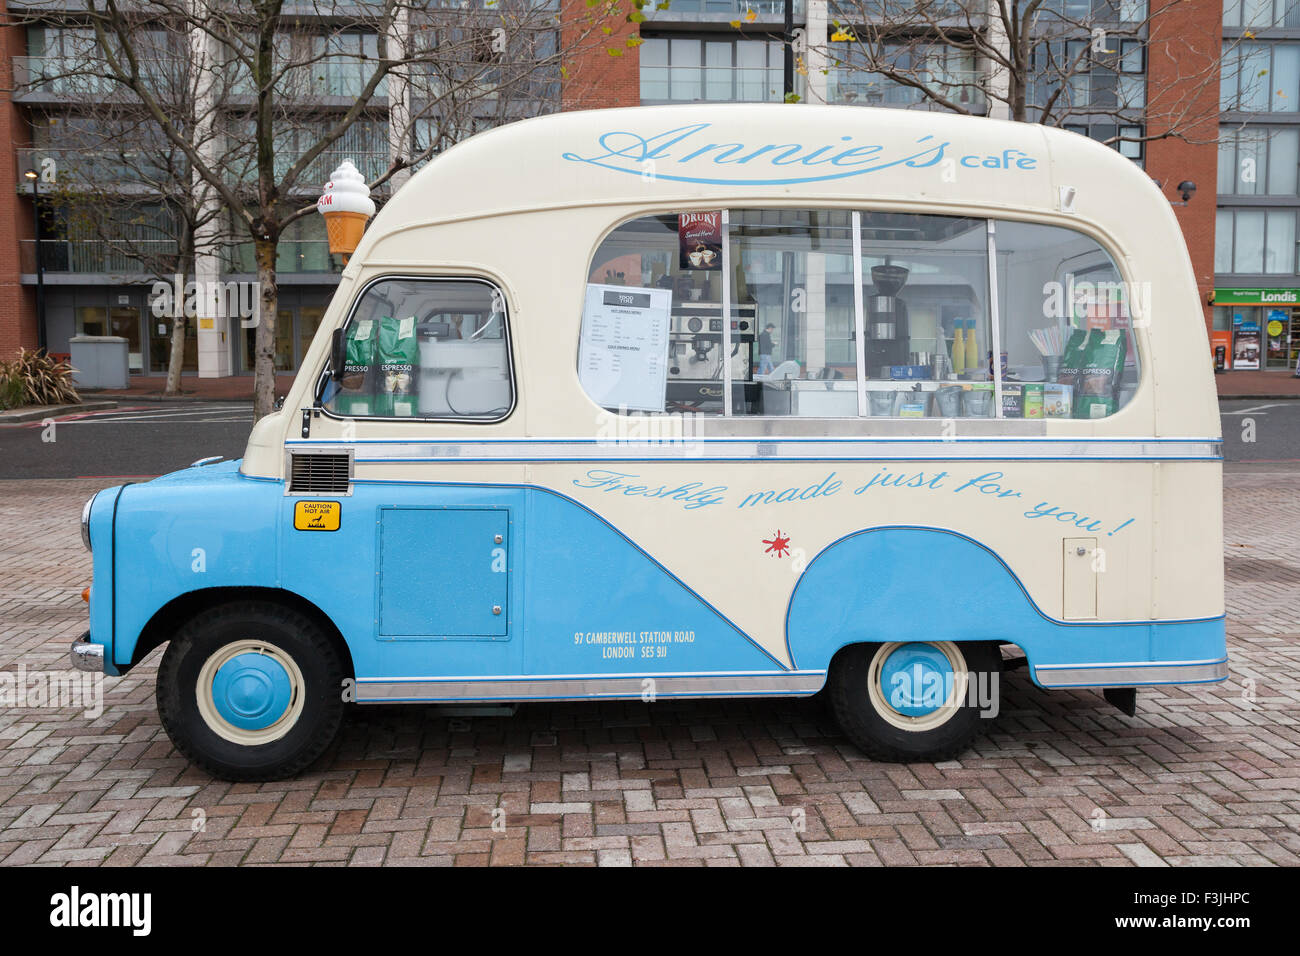 An old ice-cream van converted to a mobile coffee shop in London's Victoria Dock. - Stock Image